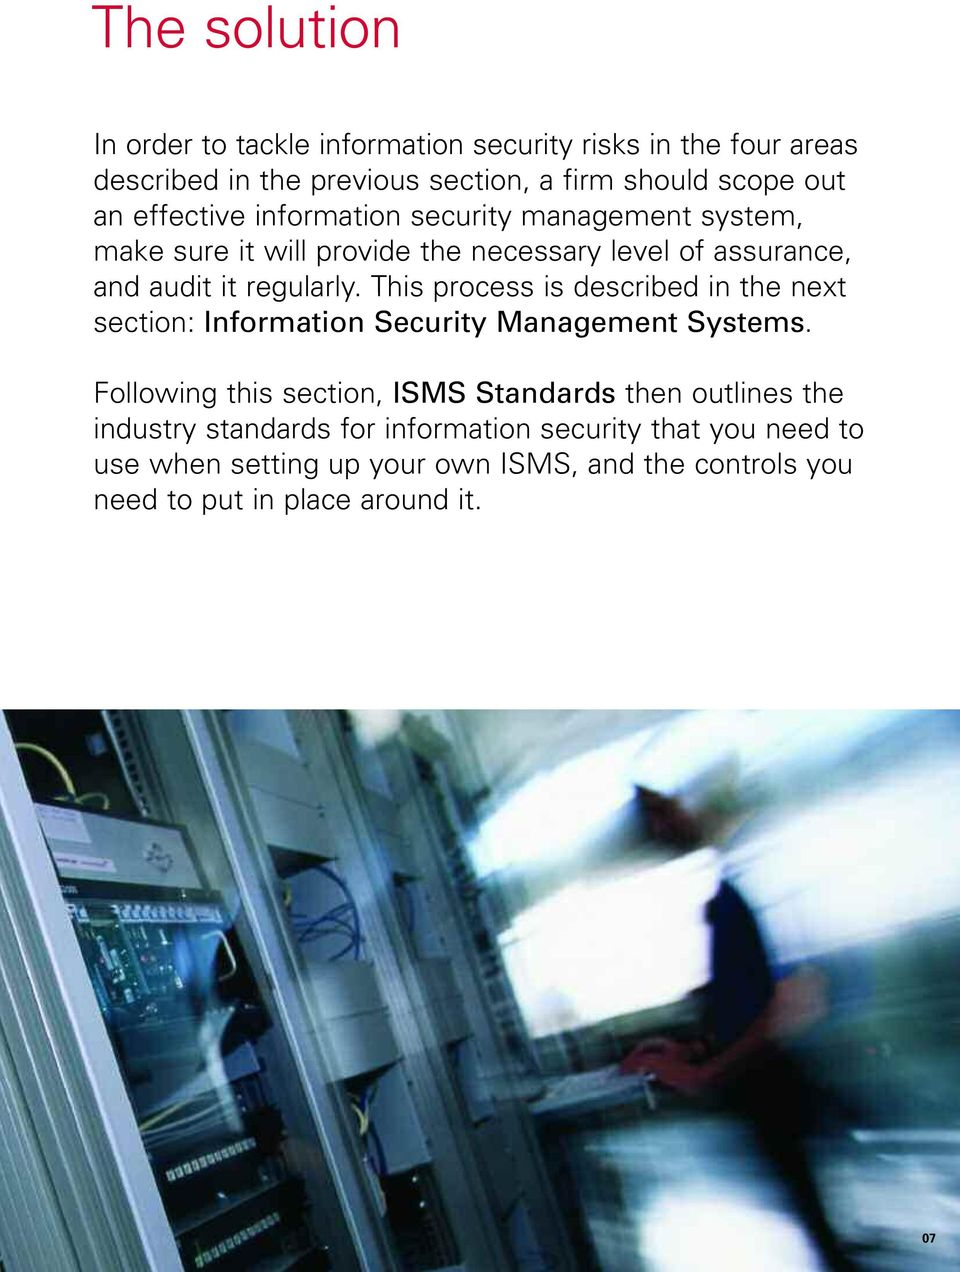 This process is described in the next section: Information Security Management Systems.